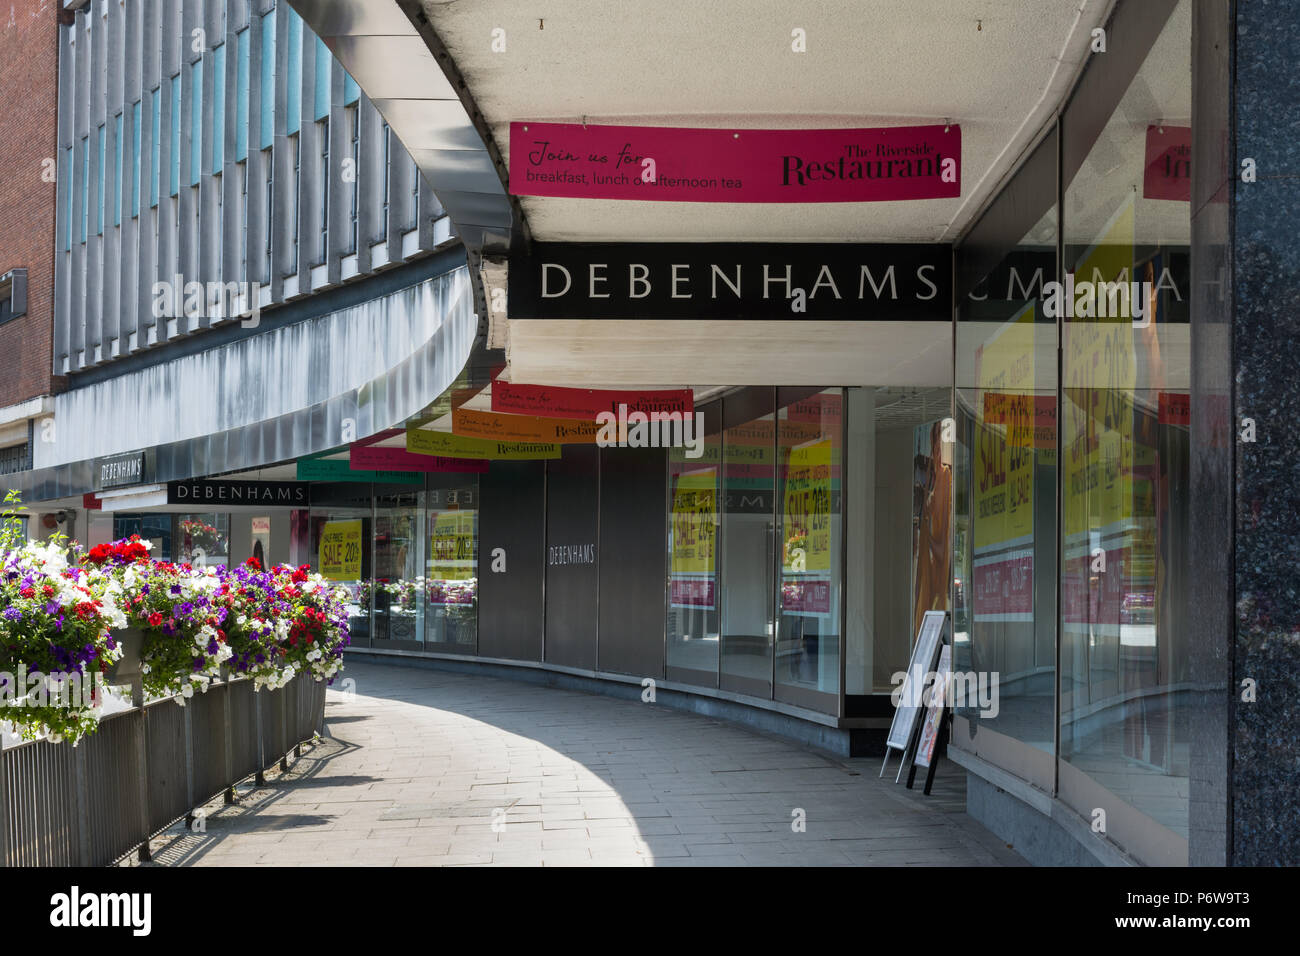 0a1994a6b0894 Exterior of the large Debenhams department store in Guildford town centre,  Surrey, UK